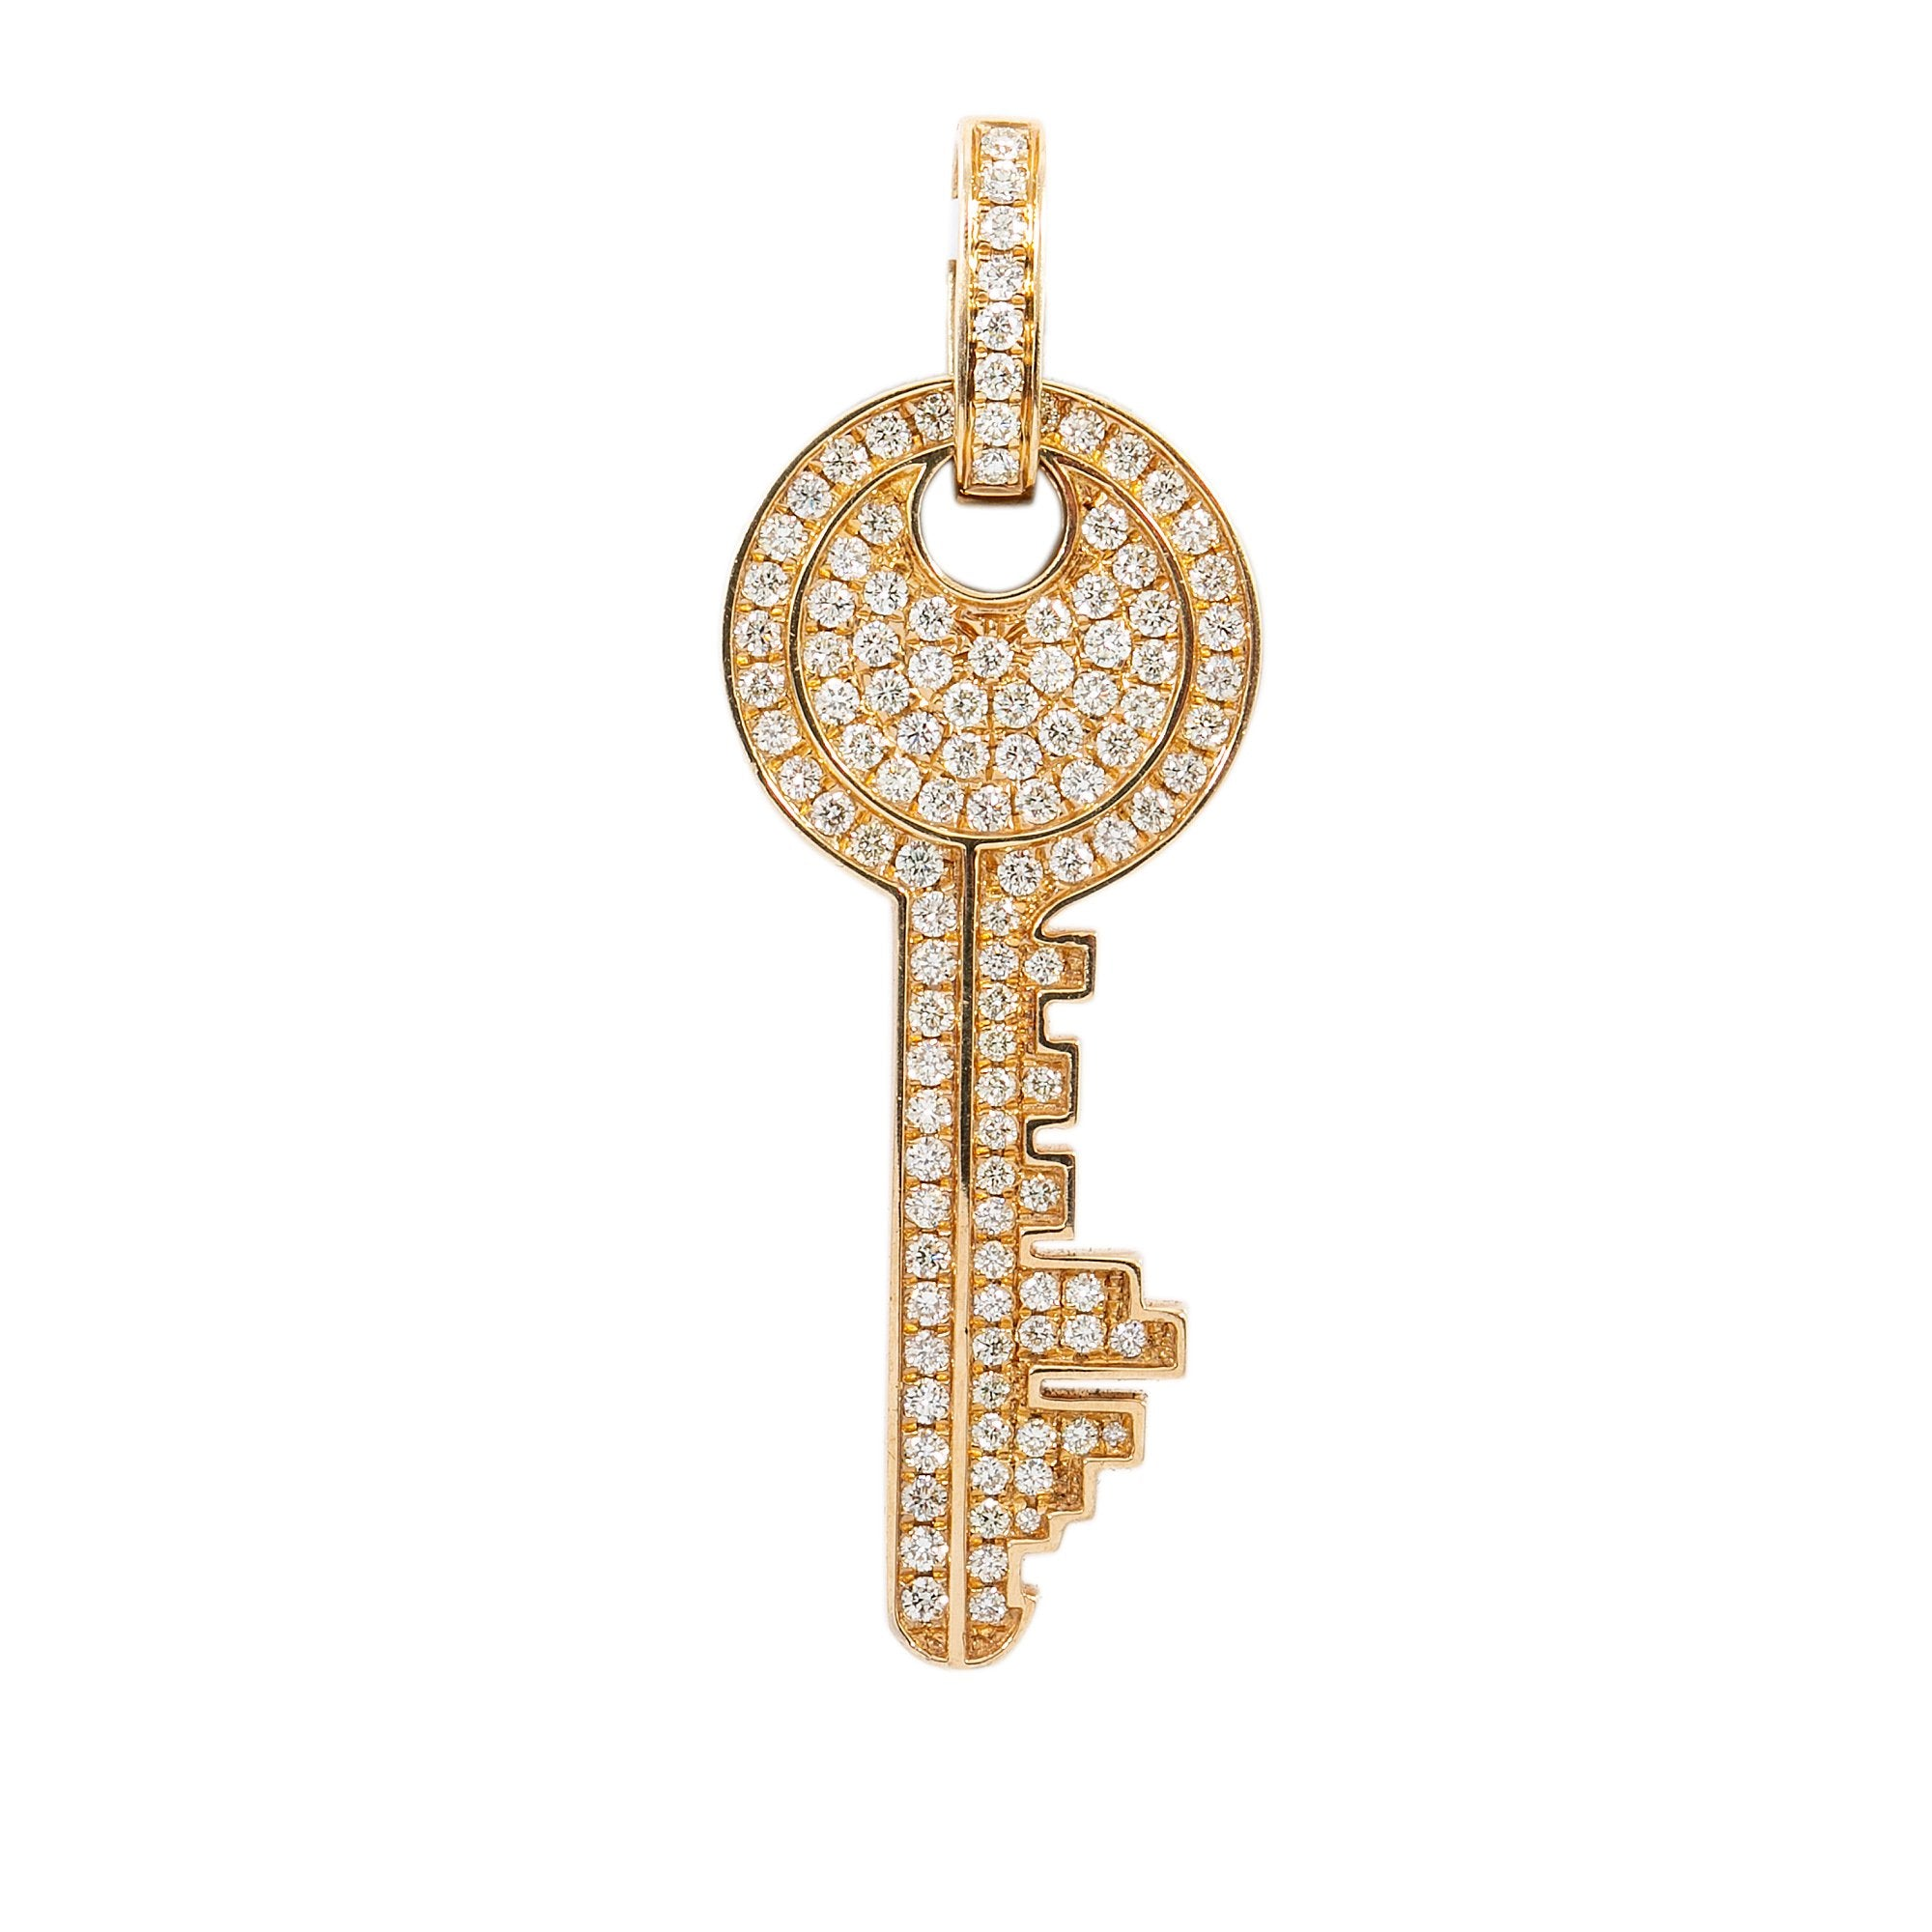 14K Yellow Gold Pendant with 1.61 CT Diamonds